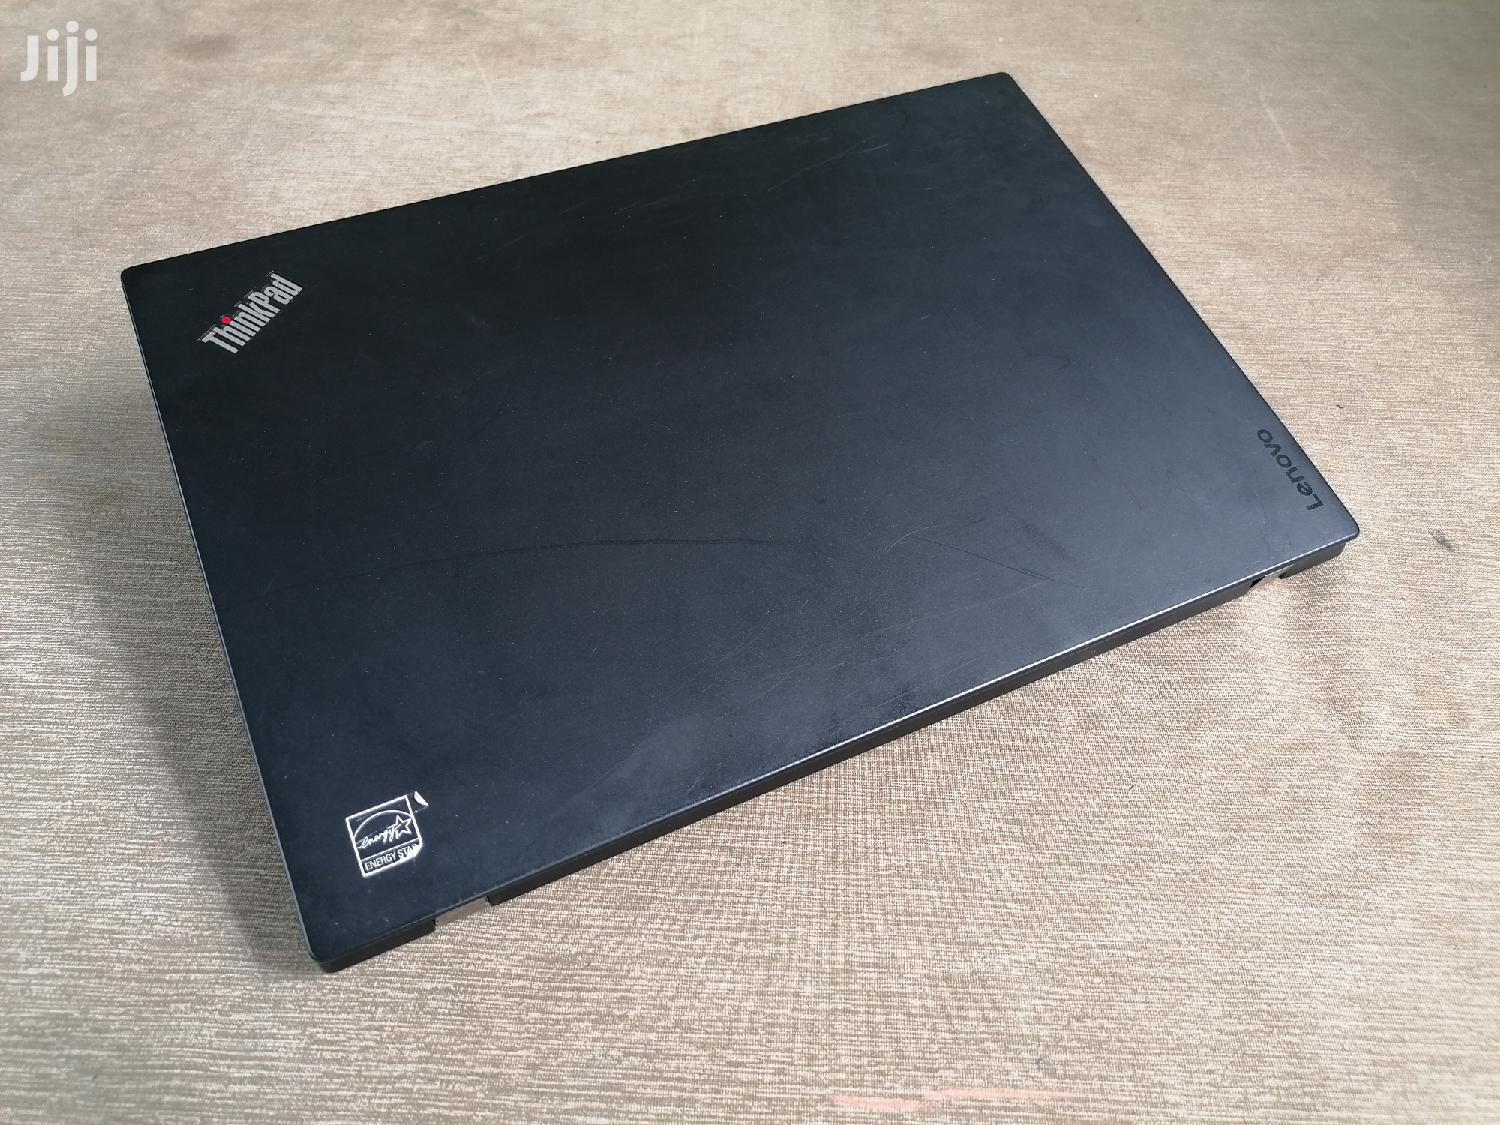 Laptop Lenovo ThinkPad T470s 8GB Intel Core I5 SSD 128GB | Laptops & Computers for sale in Darkuman, Greater Accra, Ghana